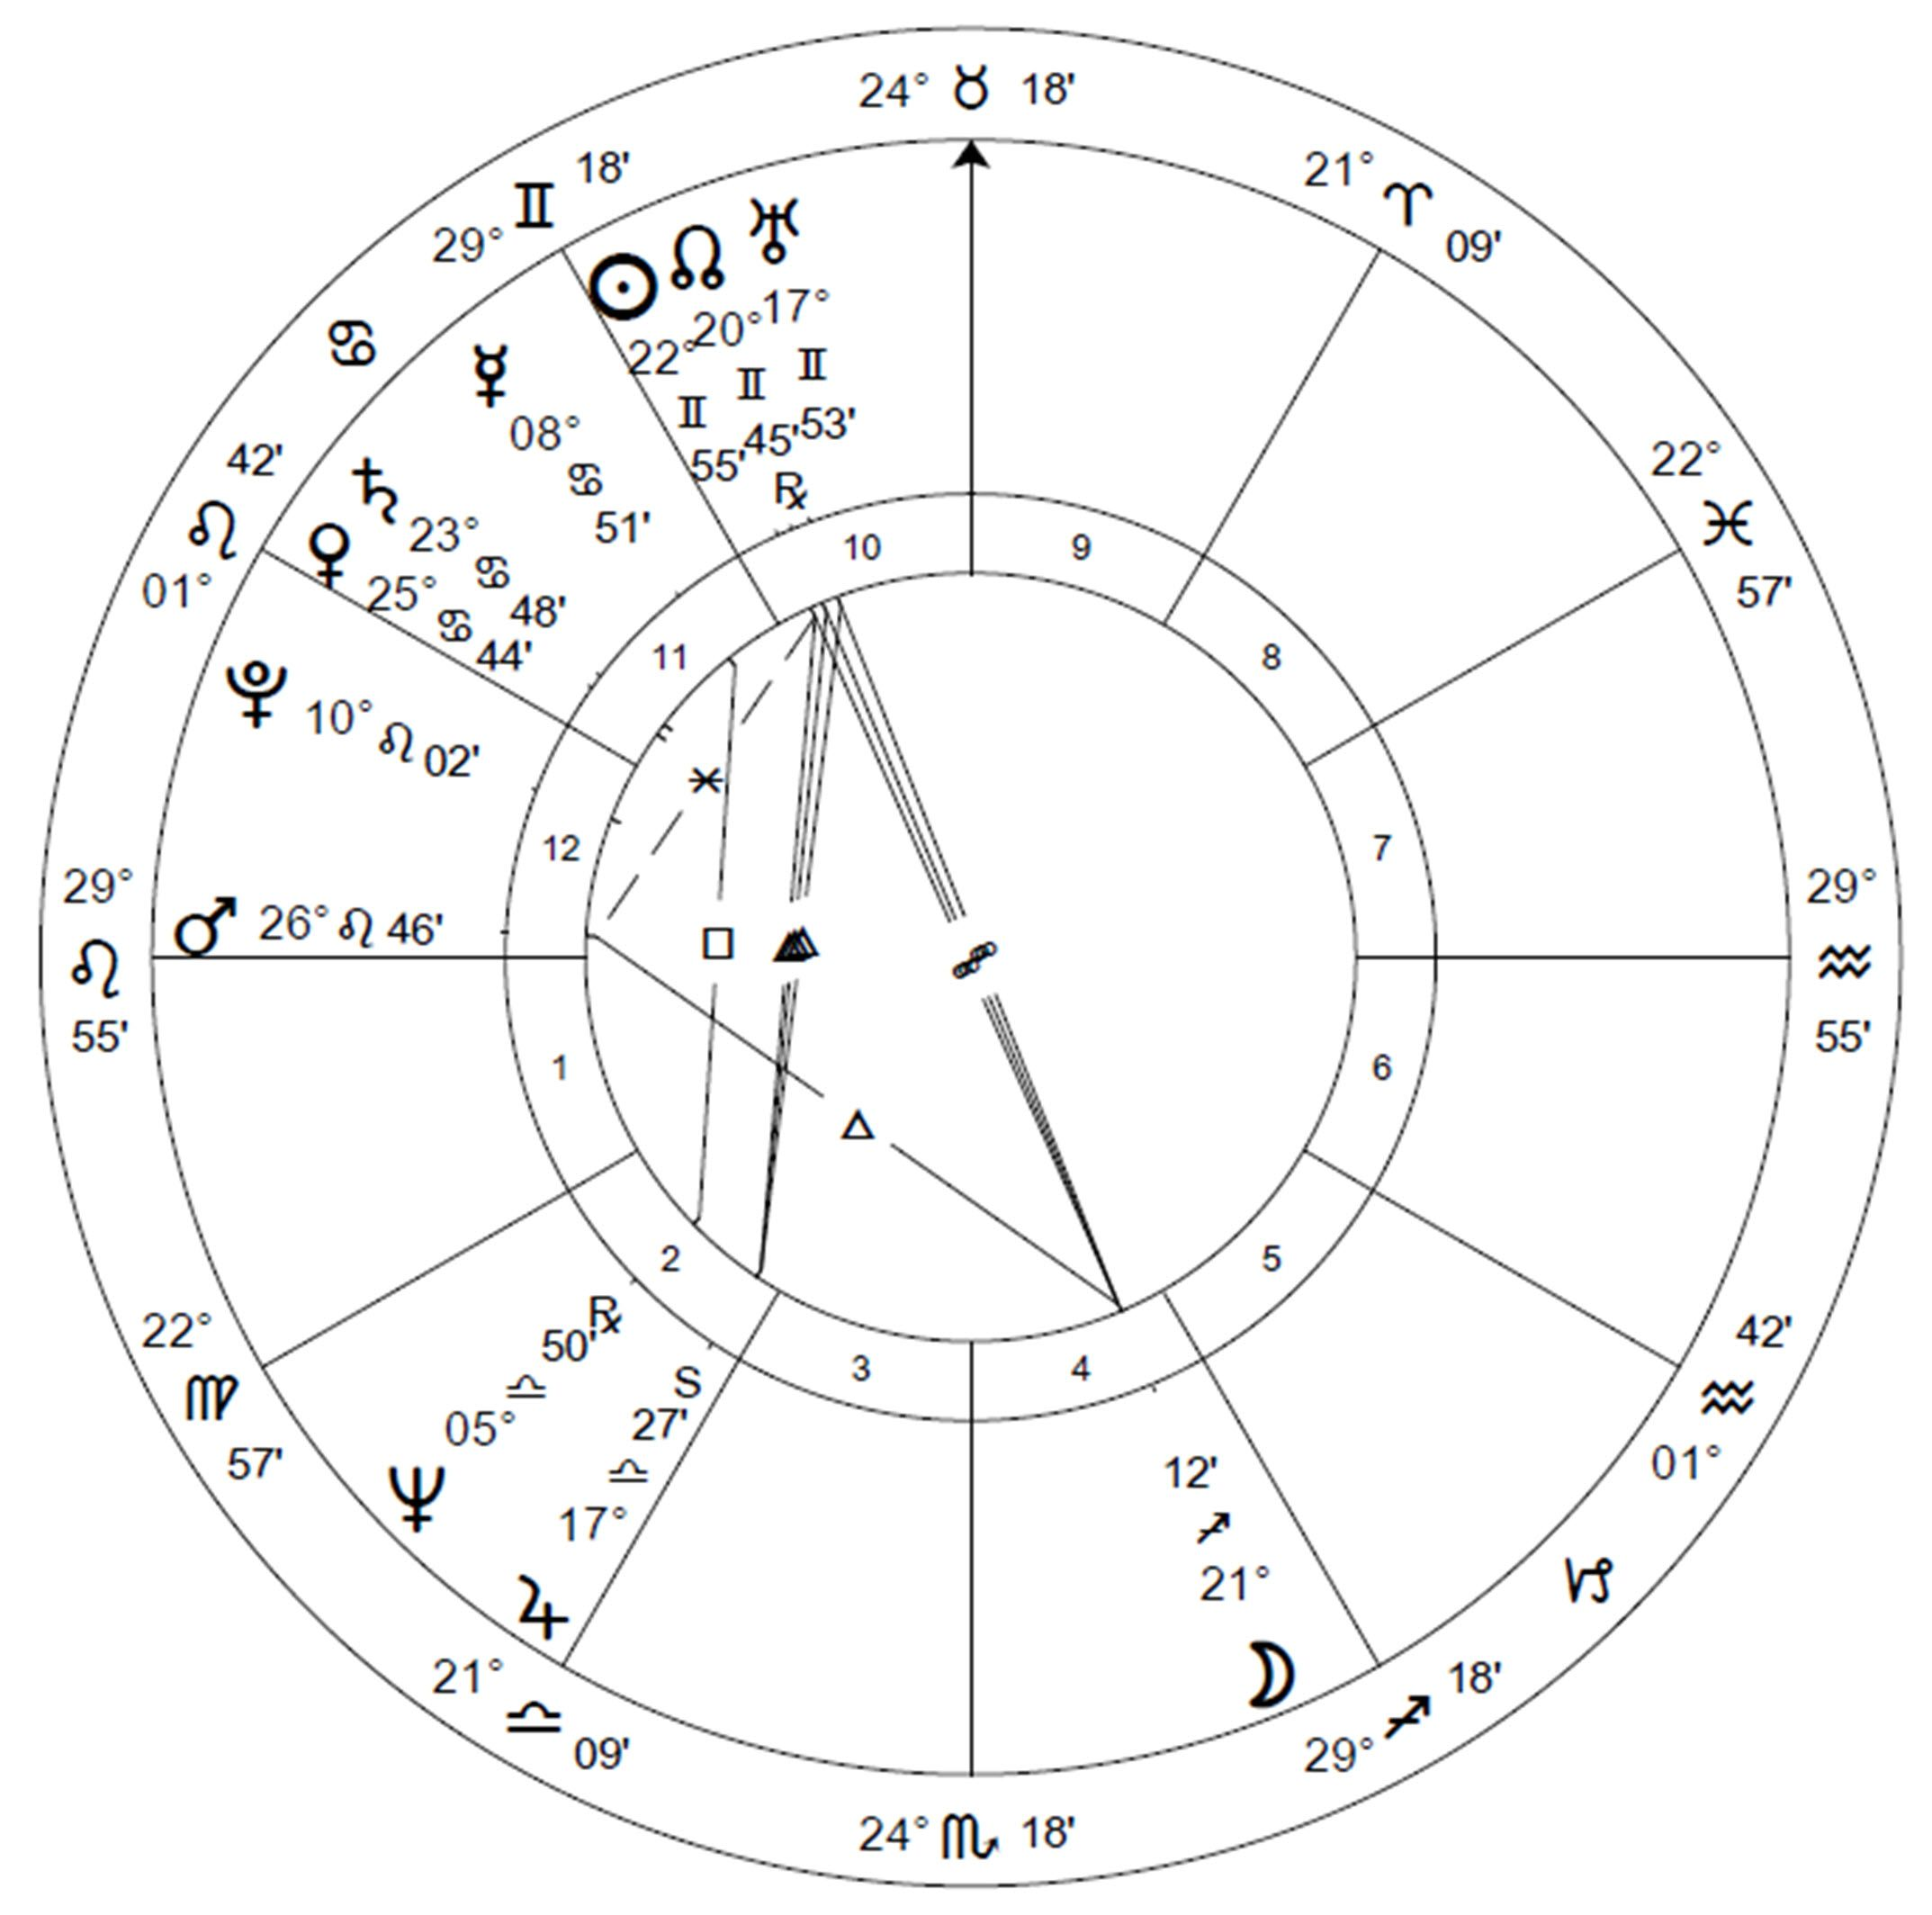 Donald J. Trumps Birth chart analysed in Forecast 2019 by Raymond. Merriman